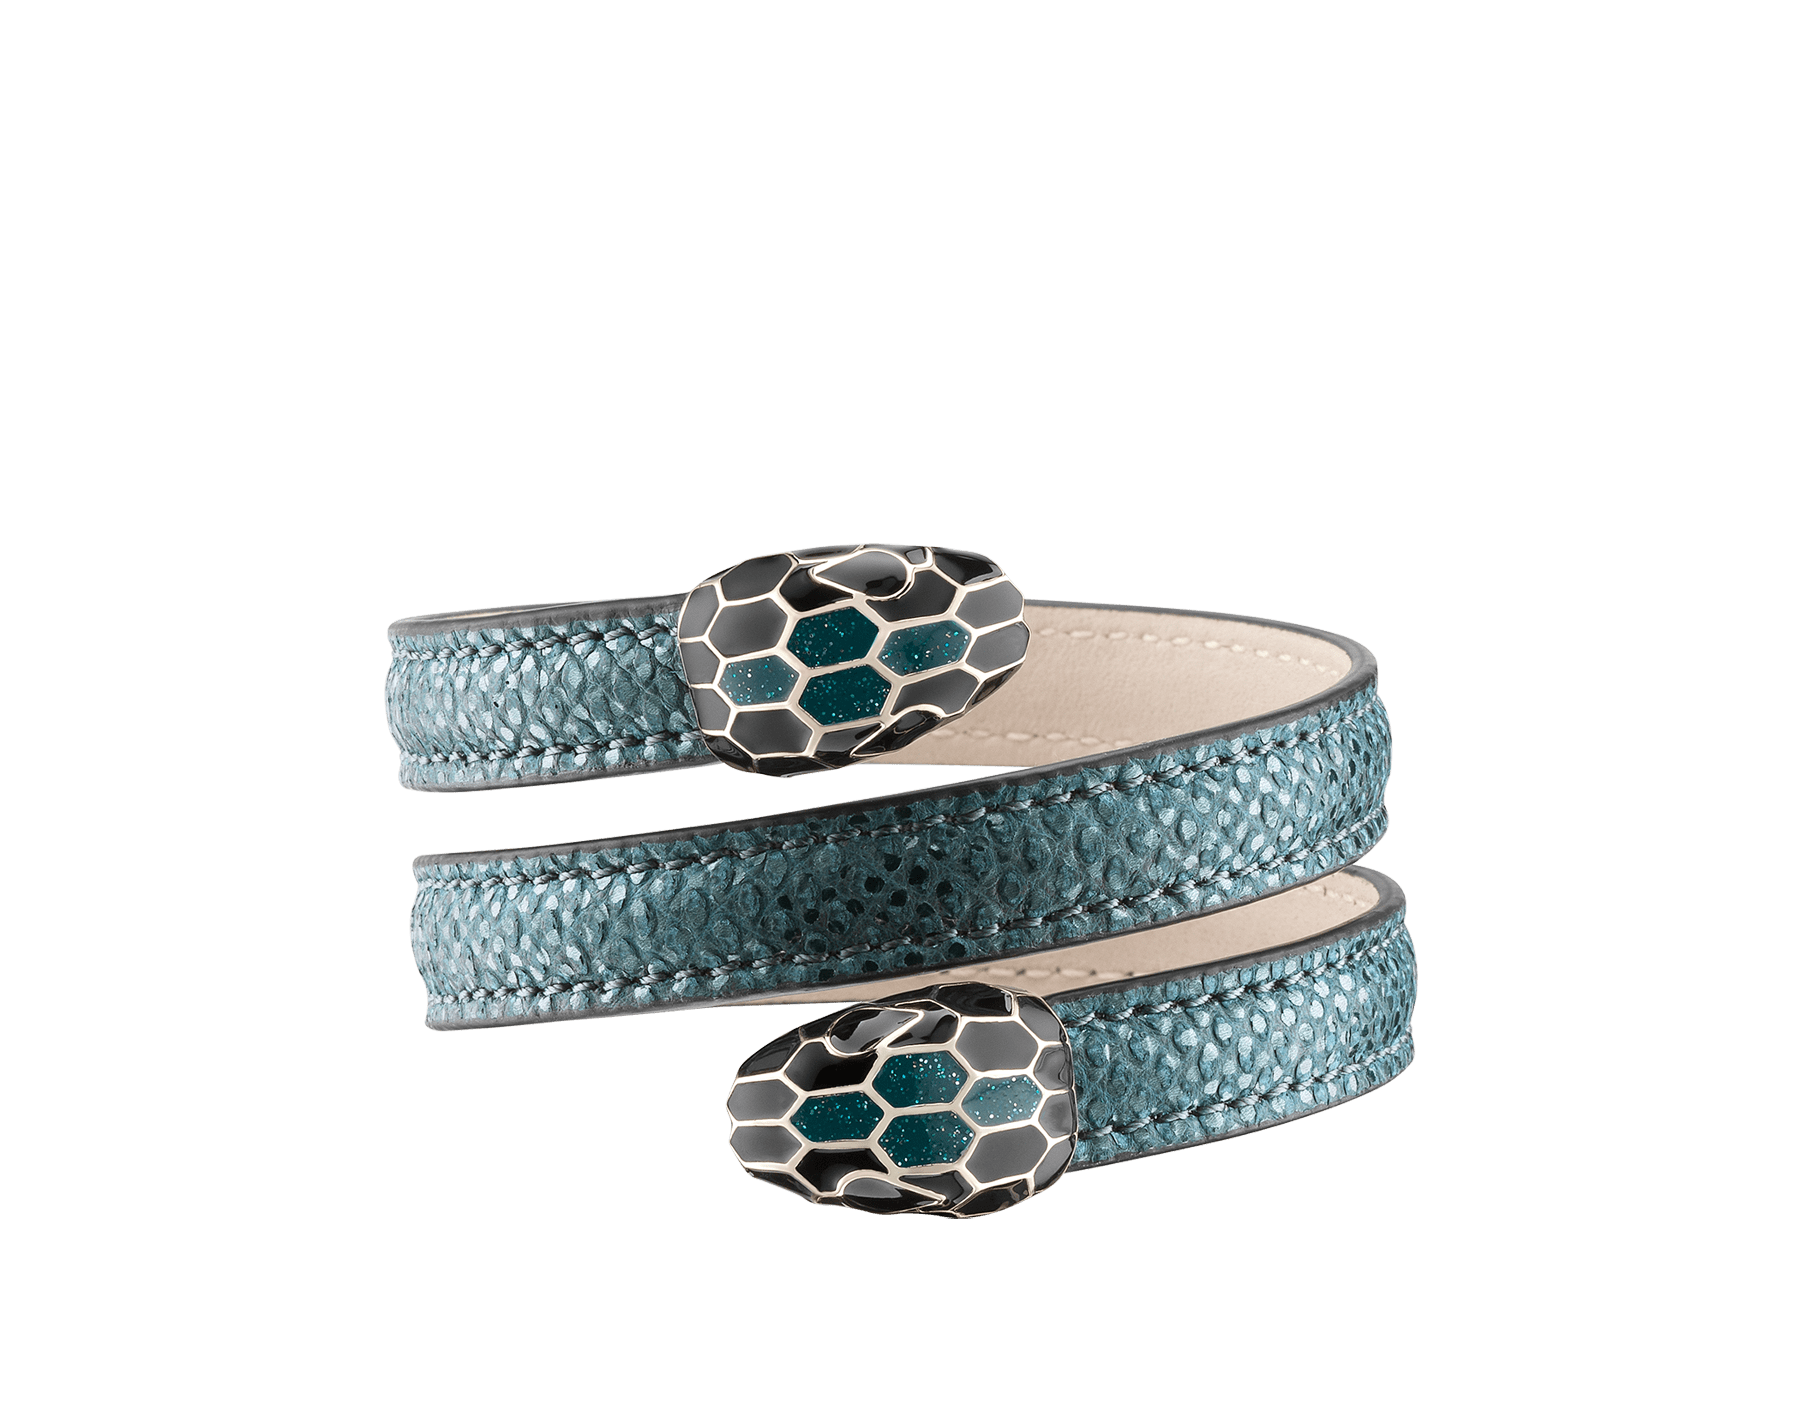 Serpenti Forever multi-coiled rigid Cleopatra bracelet in deep jade metallic karung skin, with brass light gold plated hardware. Iconic double snakehead décor in black and glitter deep jade enamel, with black enamel eyes. Cleopatra-MK-DJ image 1